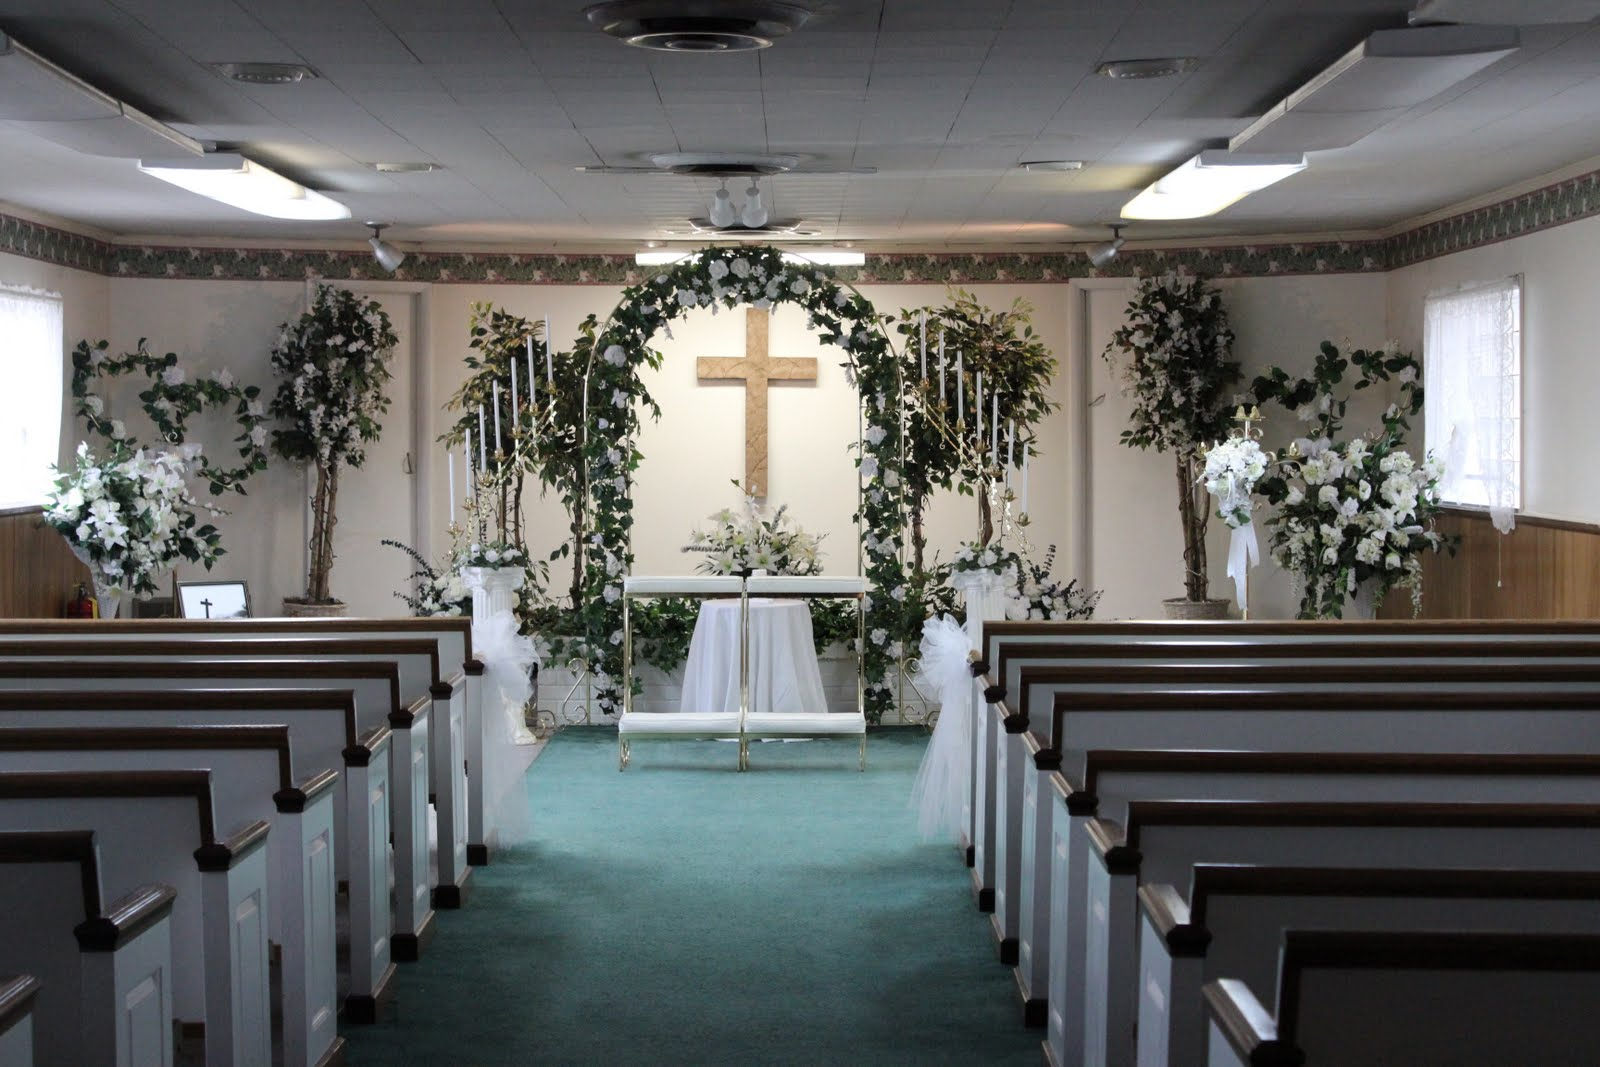 Wedding Chapel Www Pixshark Com Images Galleries With